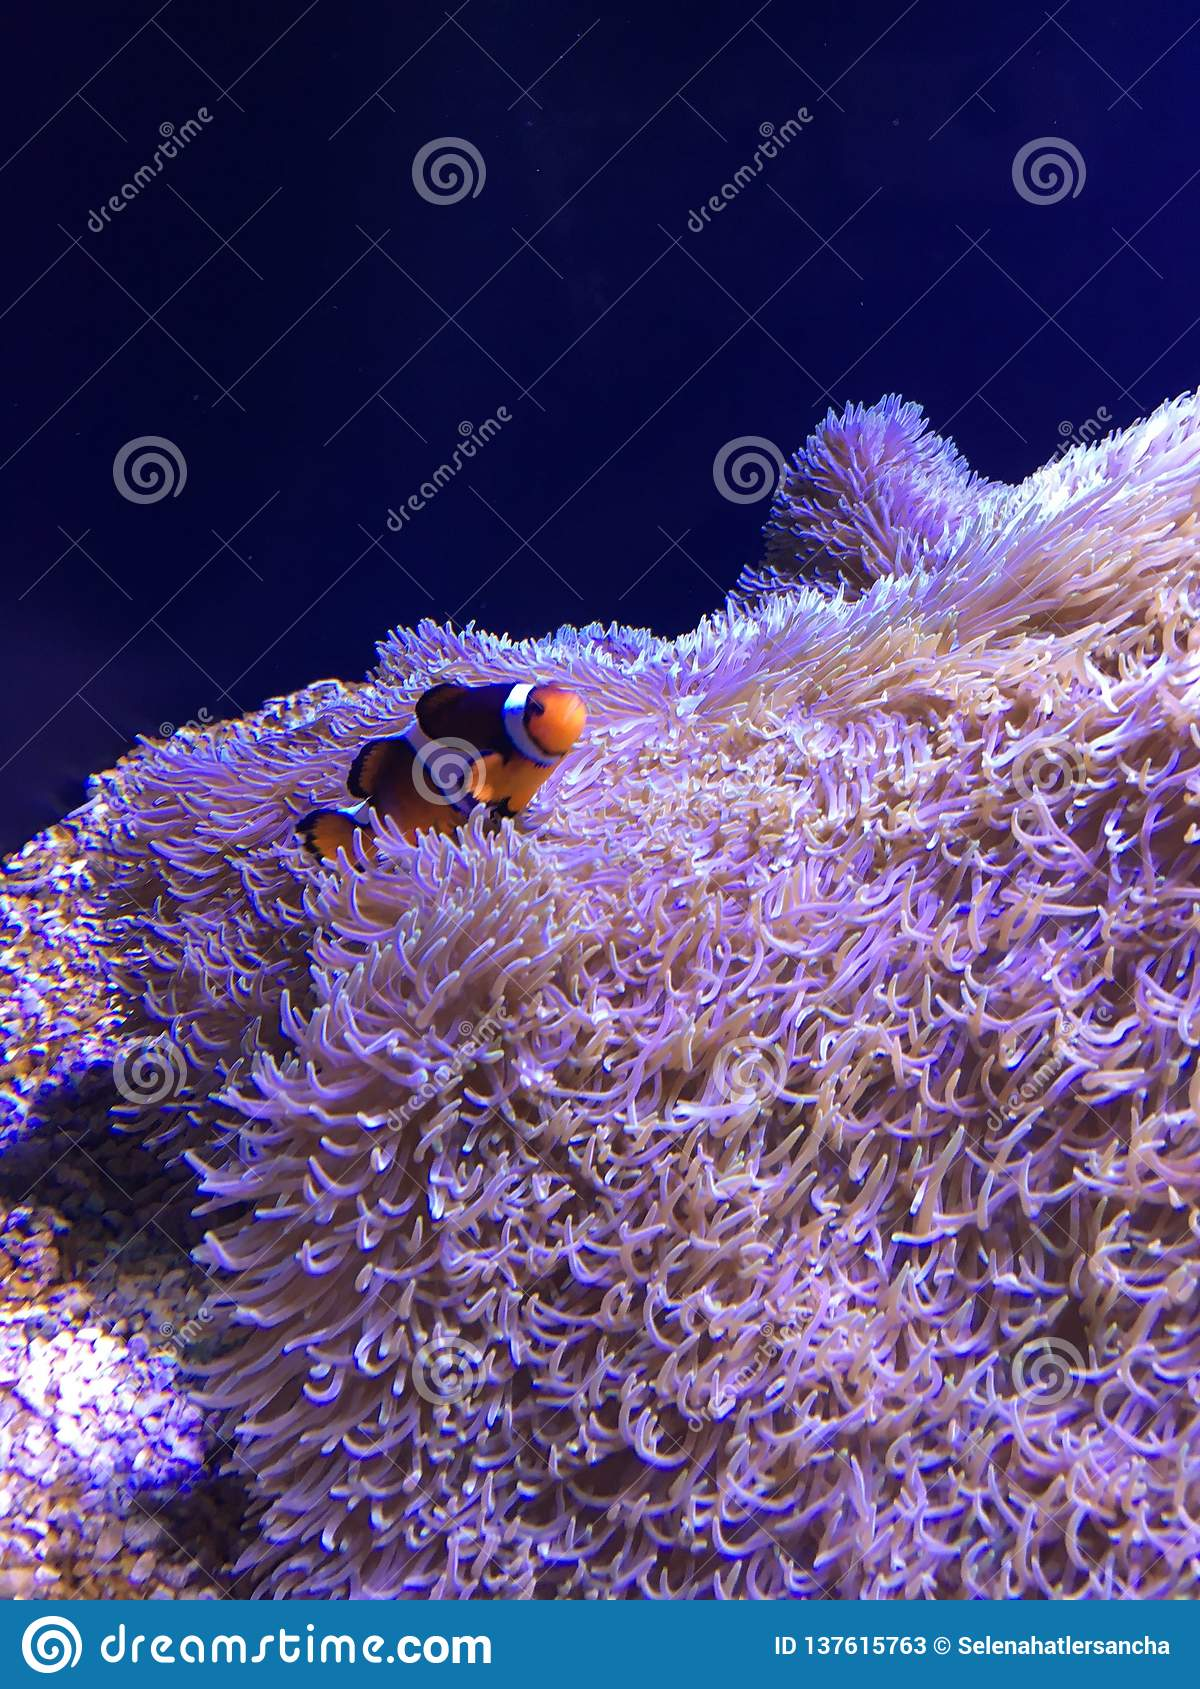 Beautiful Clownfish Swimming on Carpet Anemone